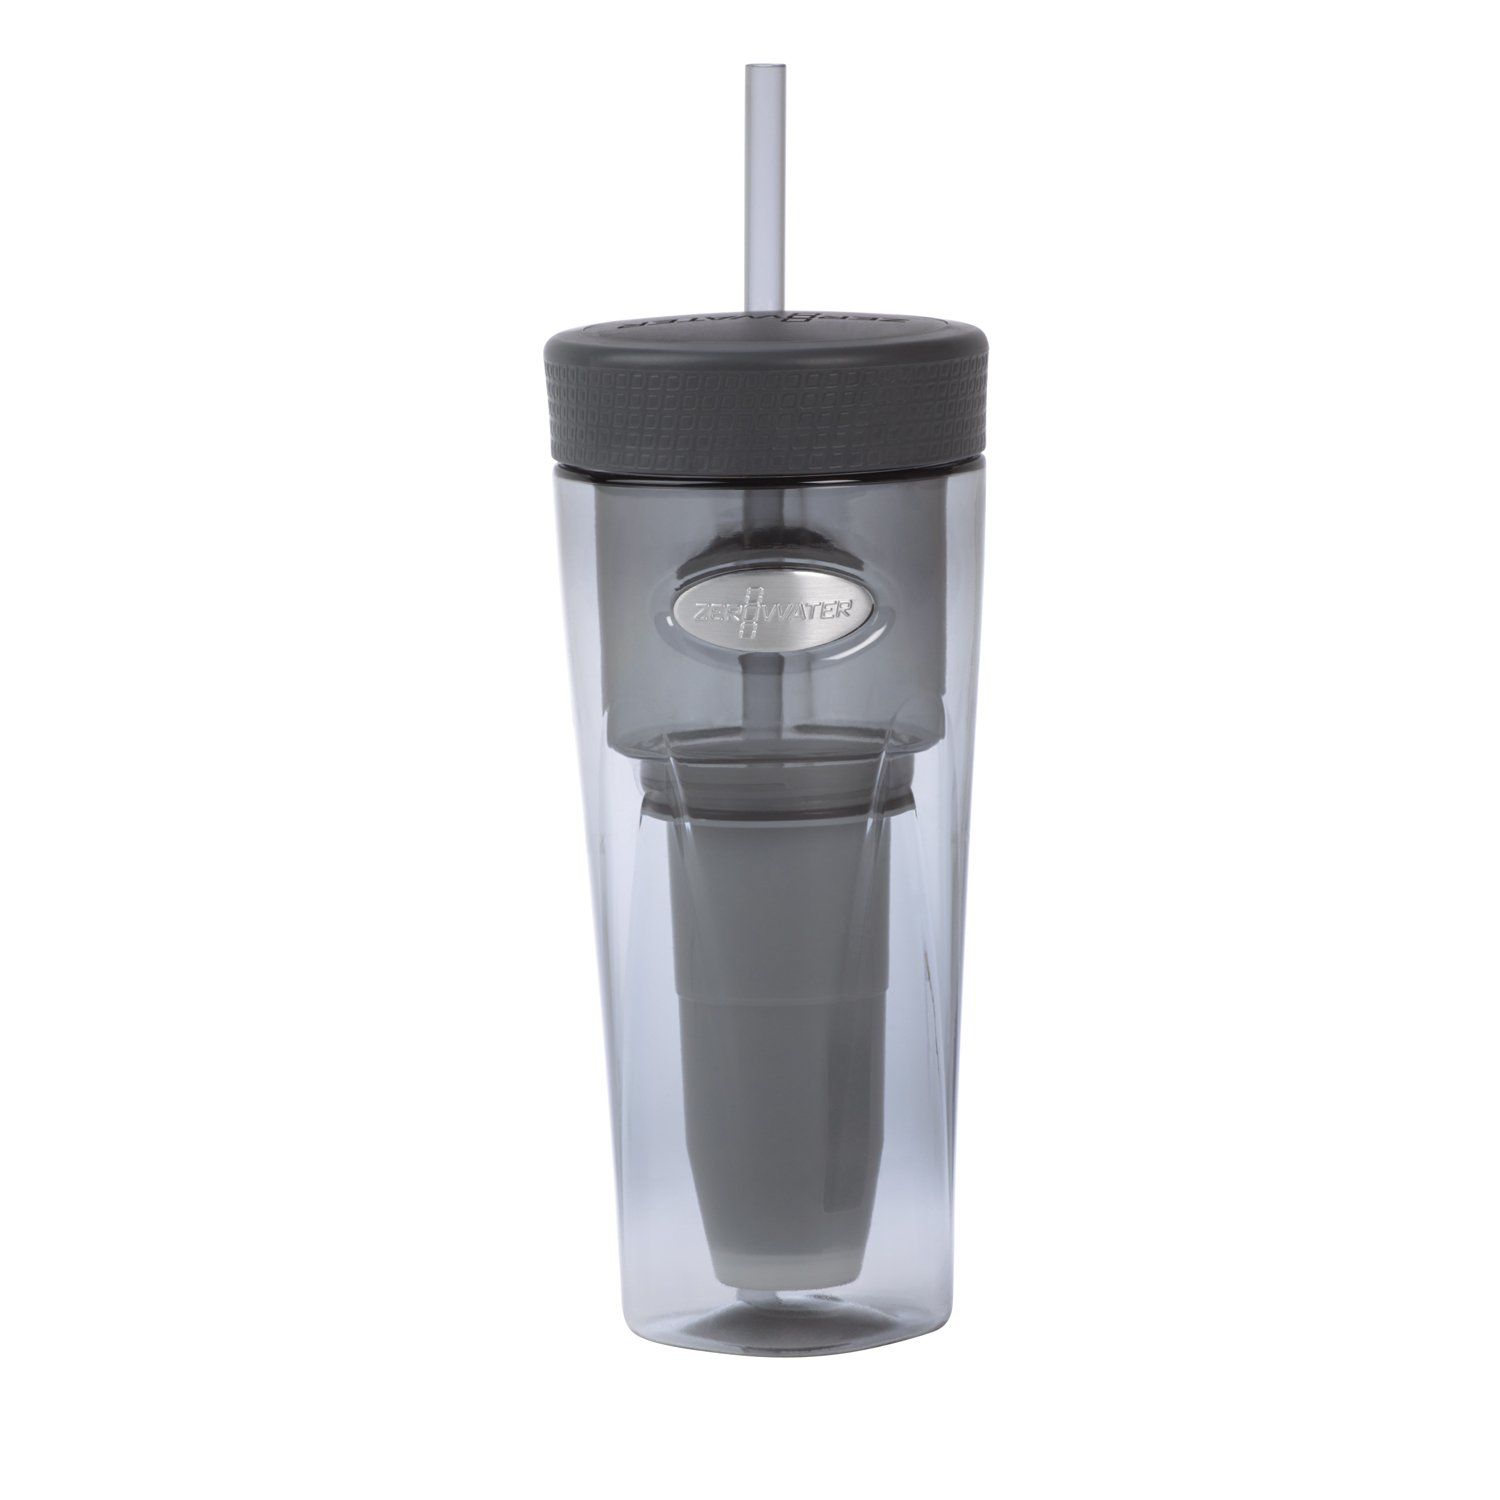 ZeroWater ZT-026Si, On-The-Go 26 Ounce Water Filter Tumbler, Silver by ZeroWater